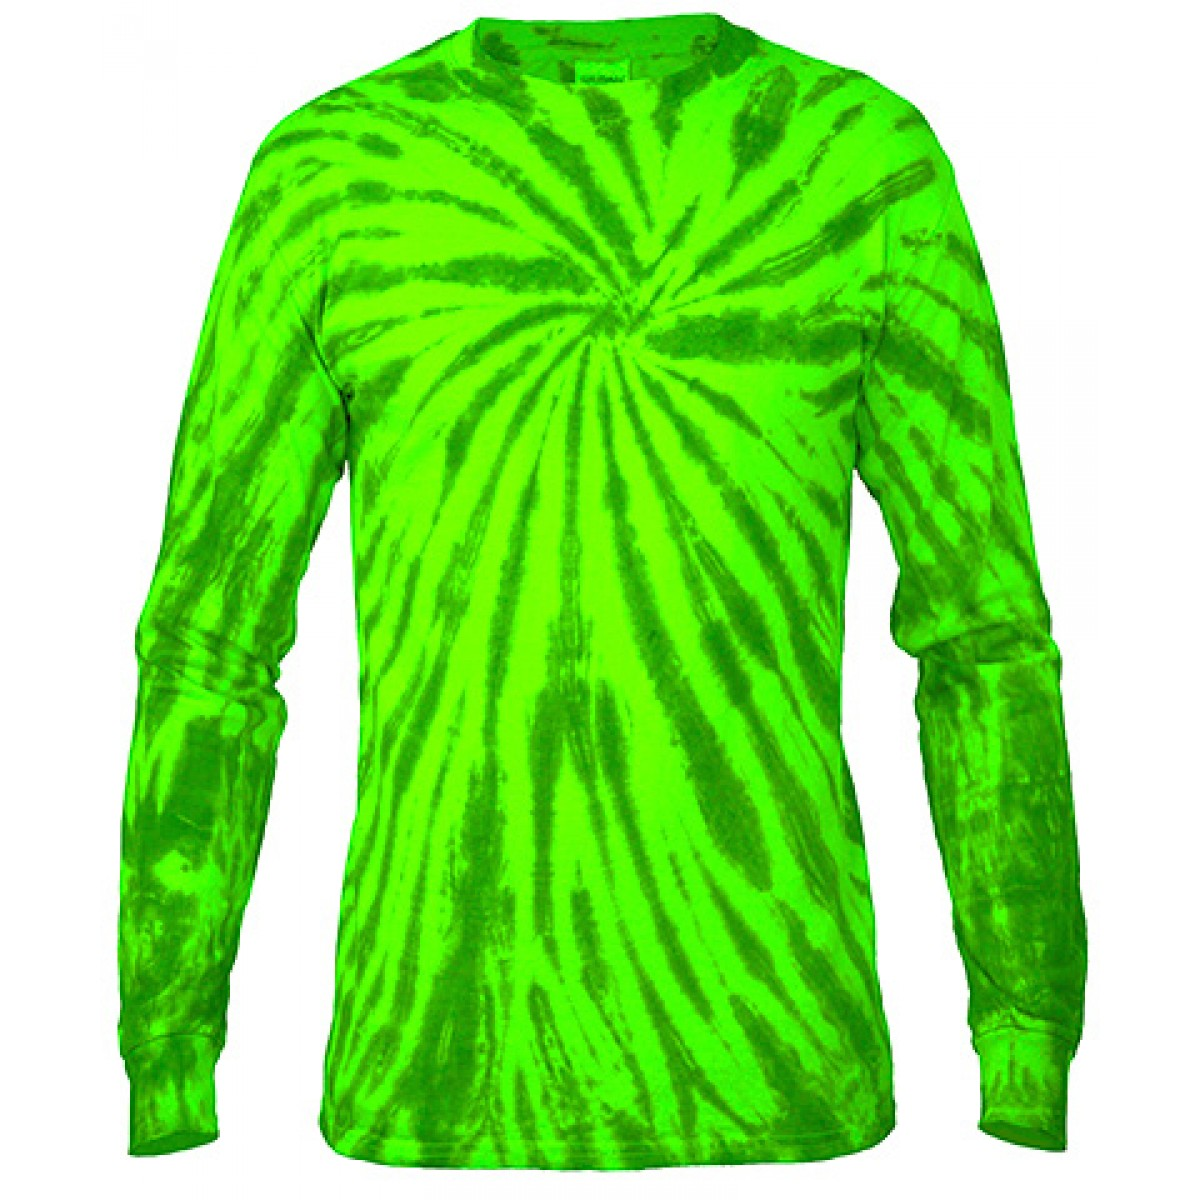 Multi Color Tie-Dye Long Sleeve Shirt -Green-2XL